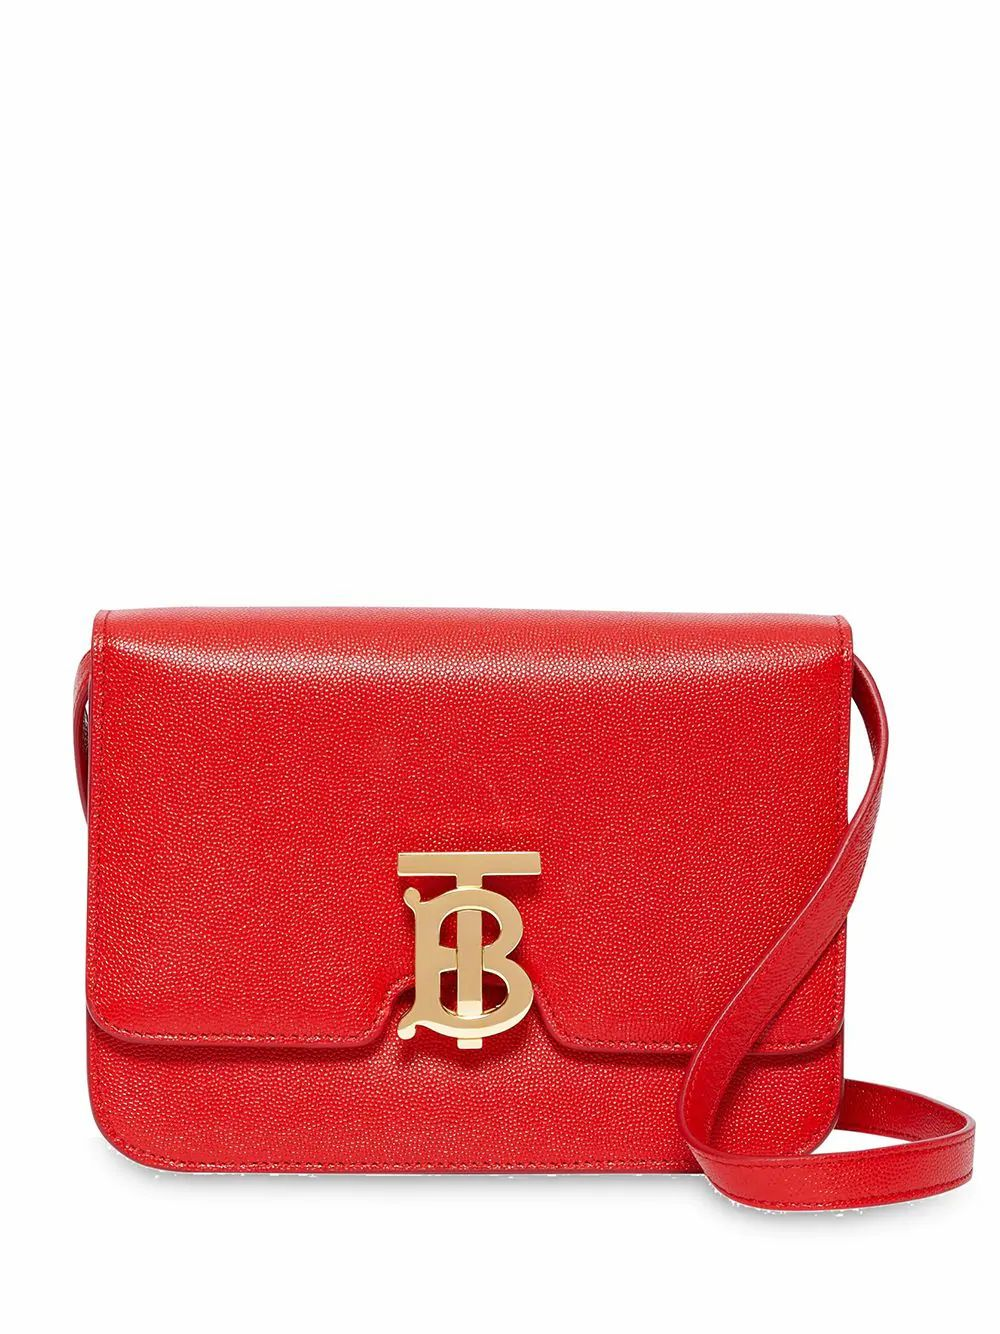 Burberry BURBERRY WOMEN'S RED LEATHER SHOULDER BAG